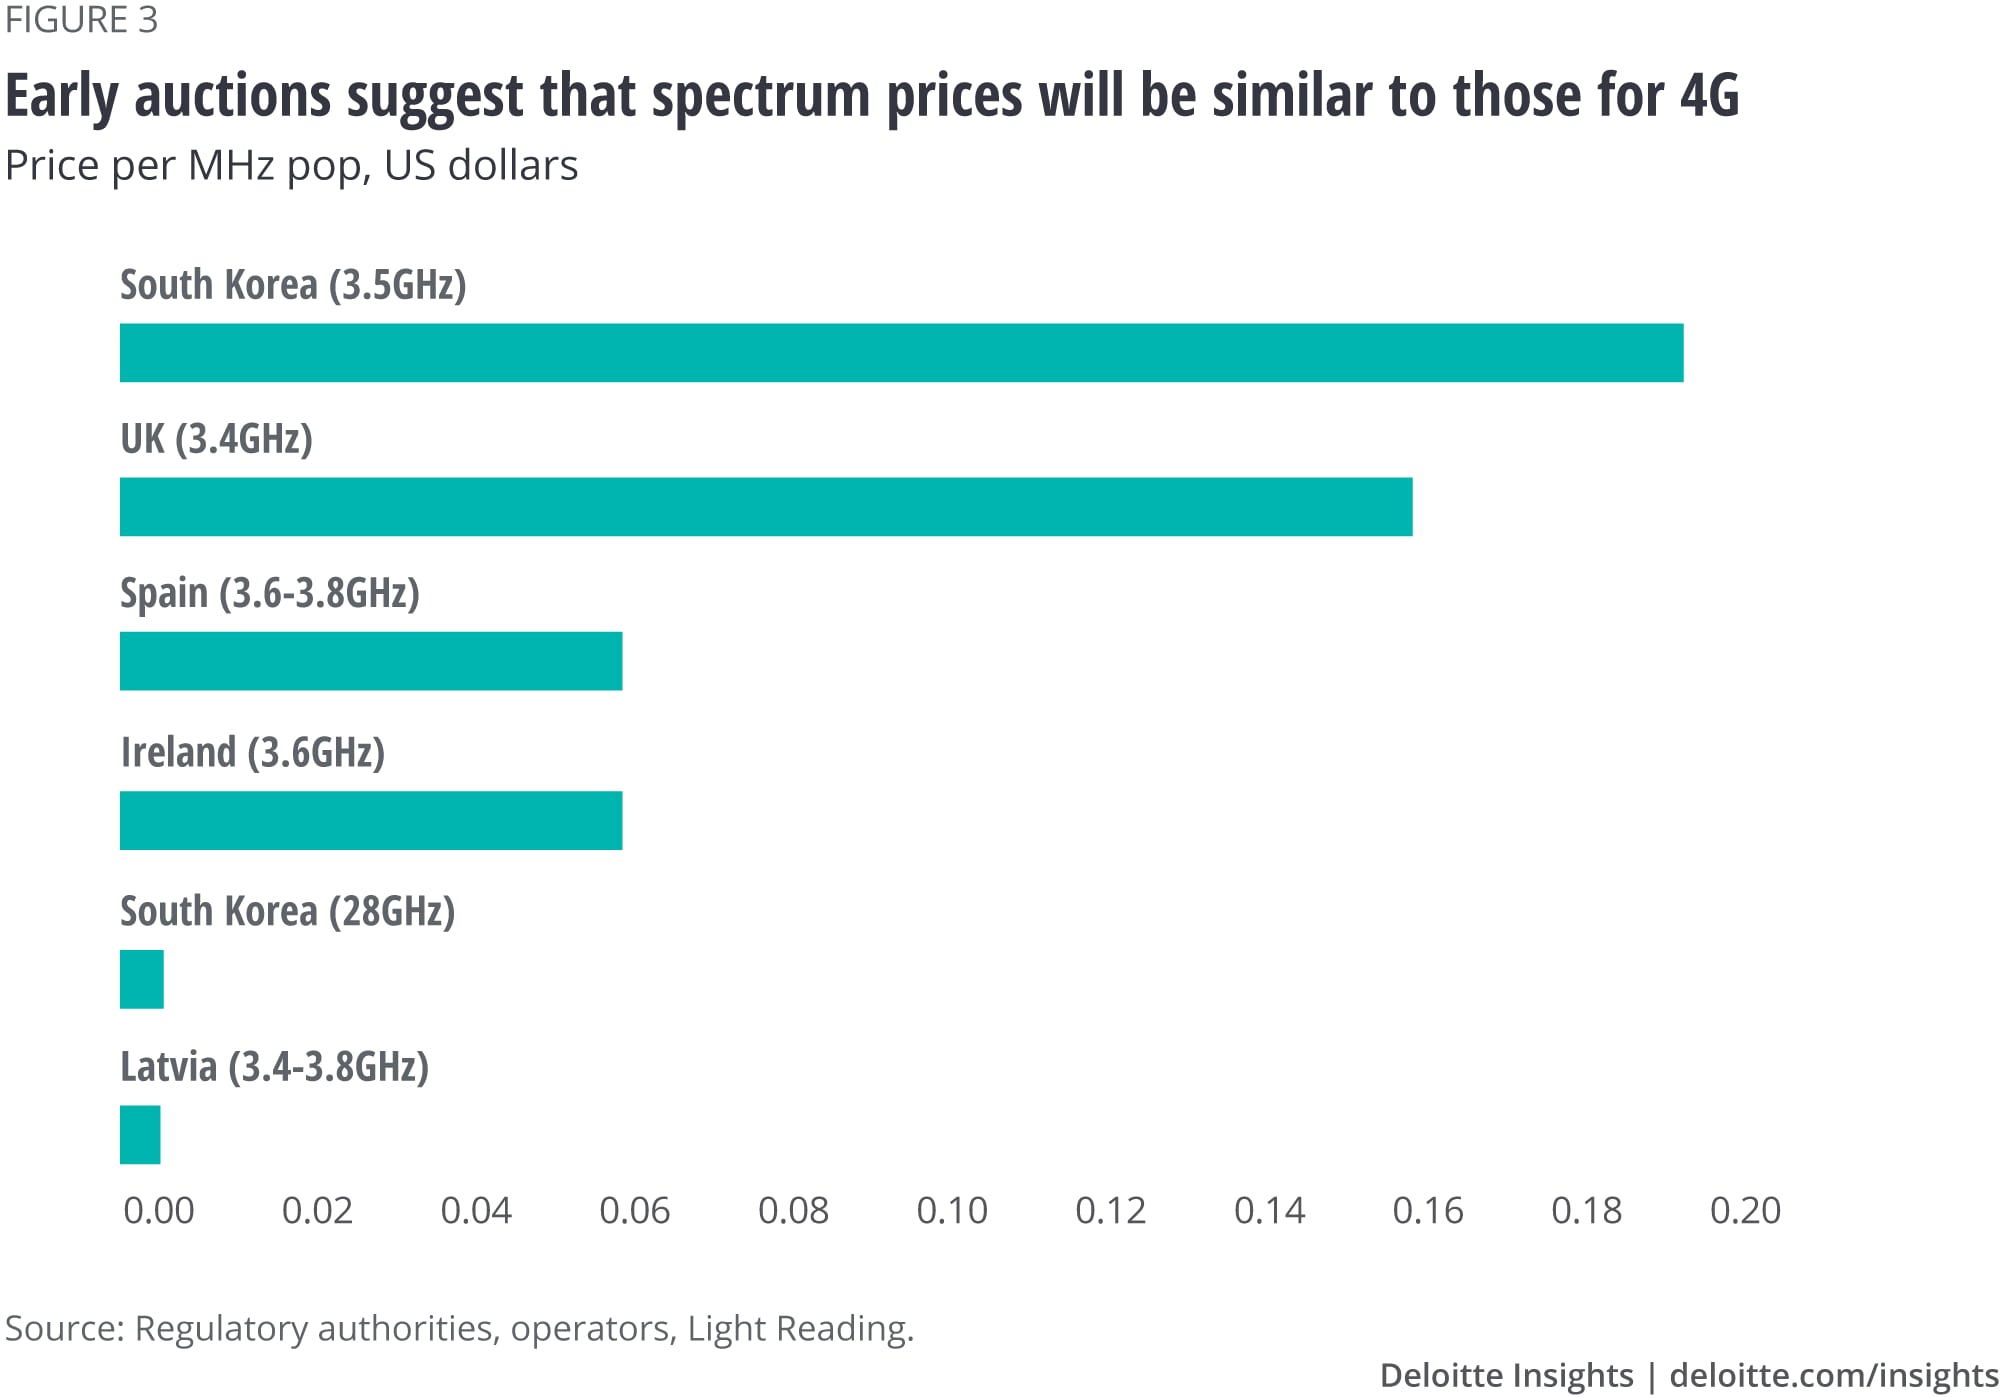 Early auctions suggest that spectrum prices will be similar to those for 4G